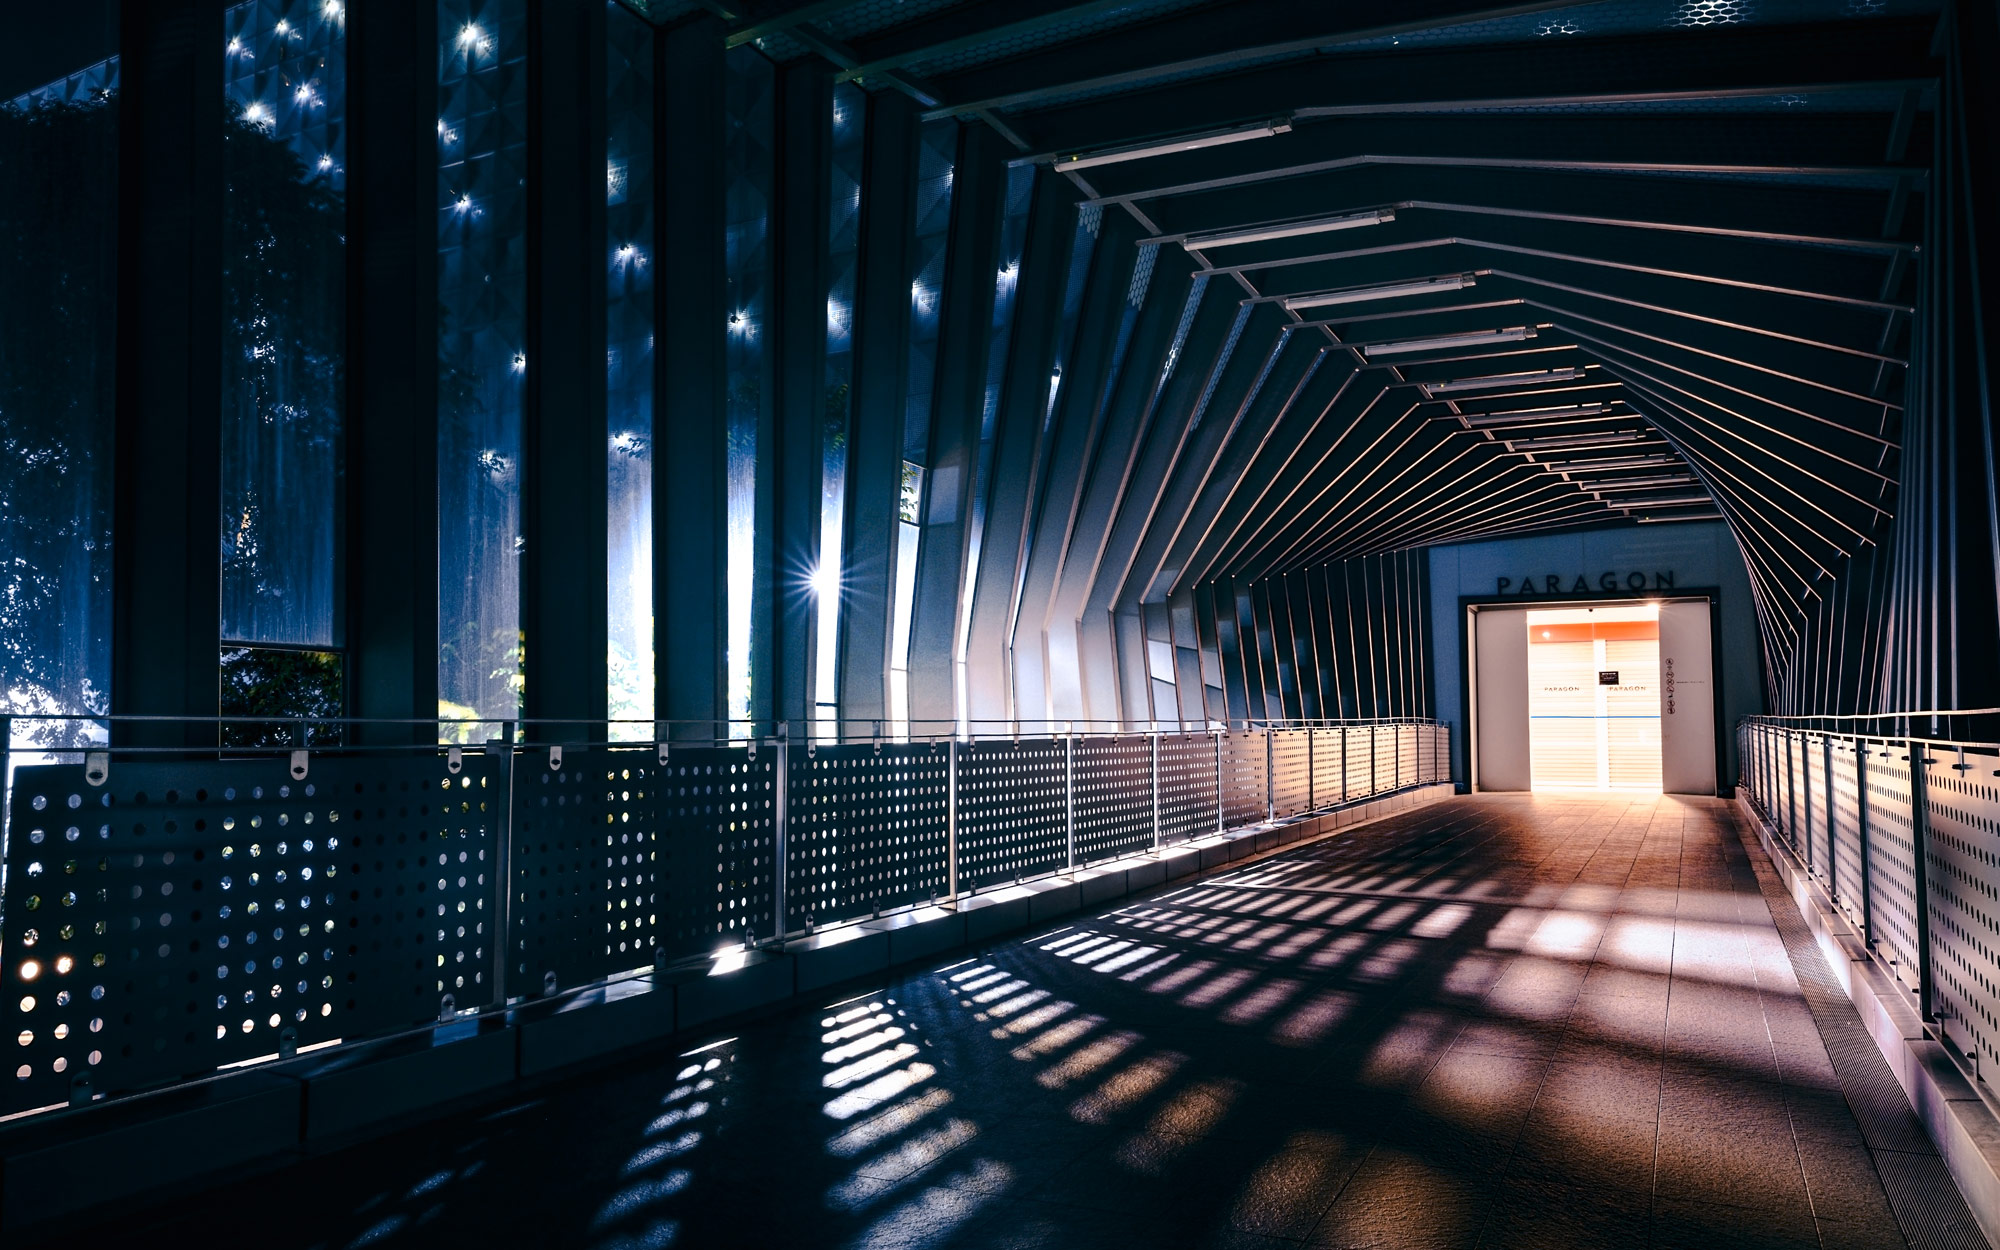 Photo of a covered walkway, taken with the NIKKOR Z 24mm f/1.8 S lens